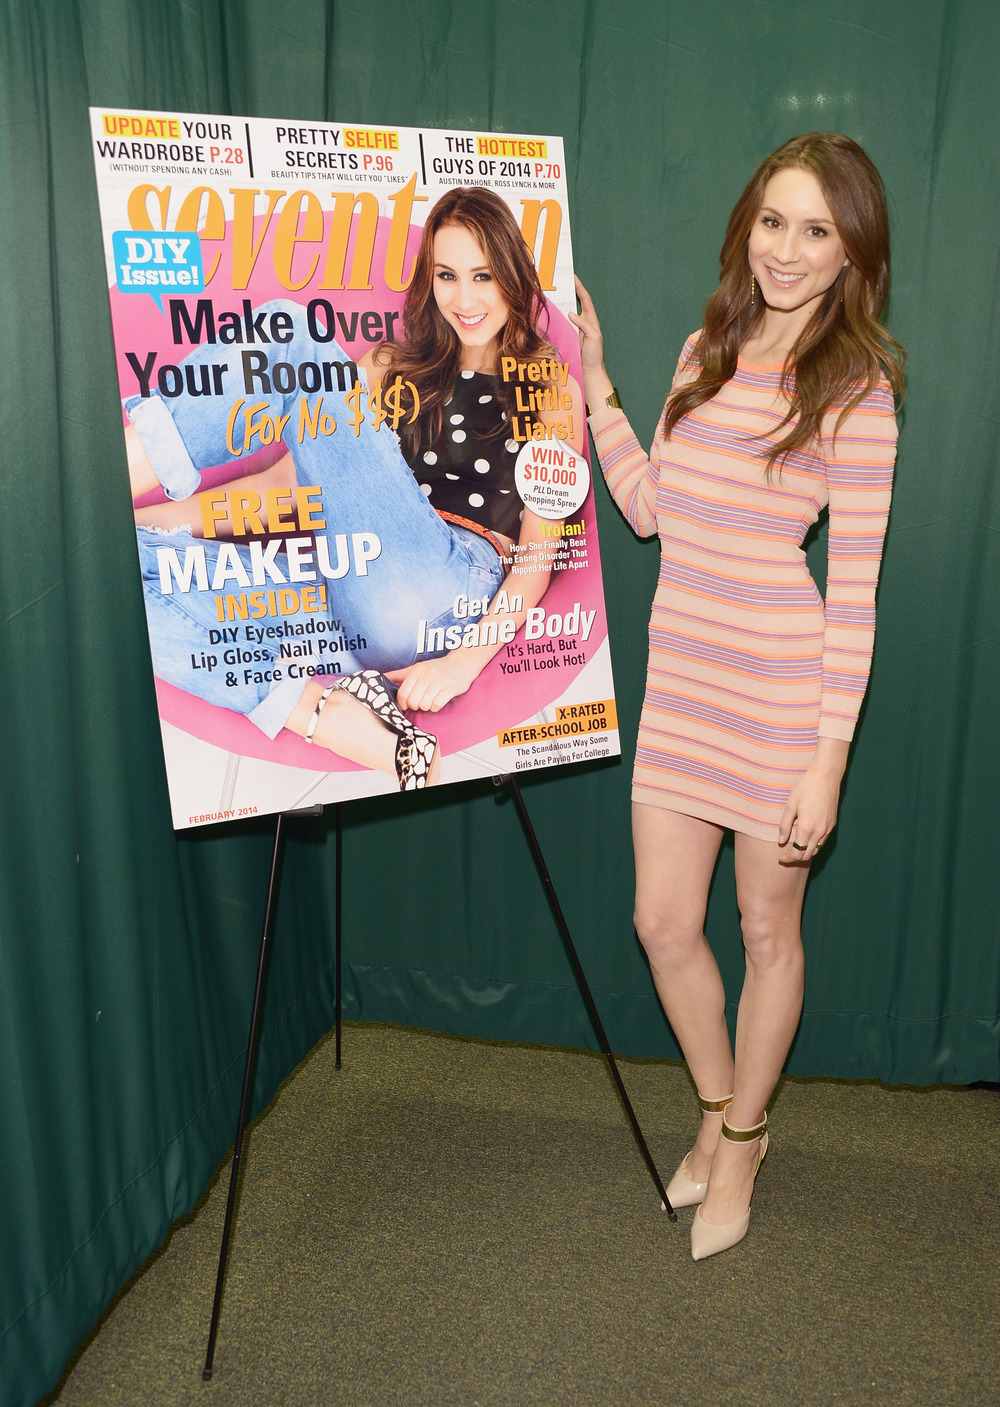 Troian Bellisario on Why She Decided to Open Up About Her Eating Disorder